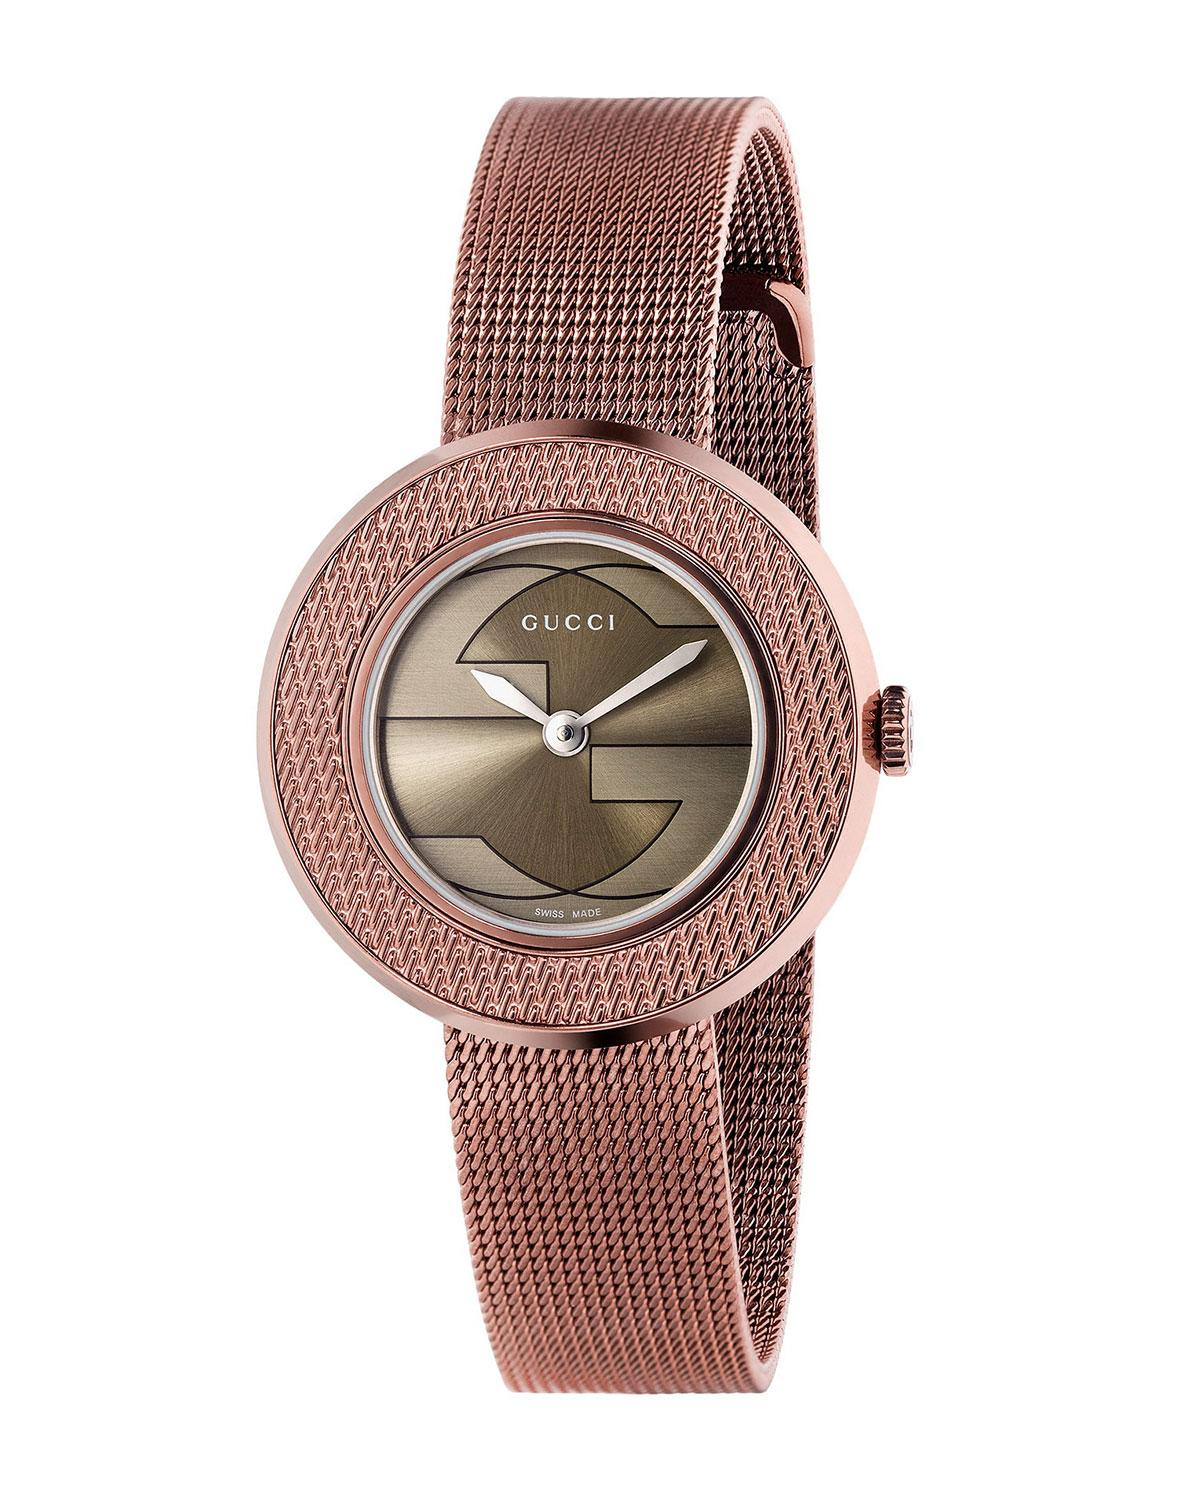 940119dcbc1 Gucci U-Play Round Pvd-Finish Mesh Bracelet Watch